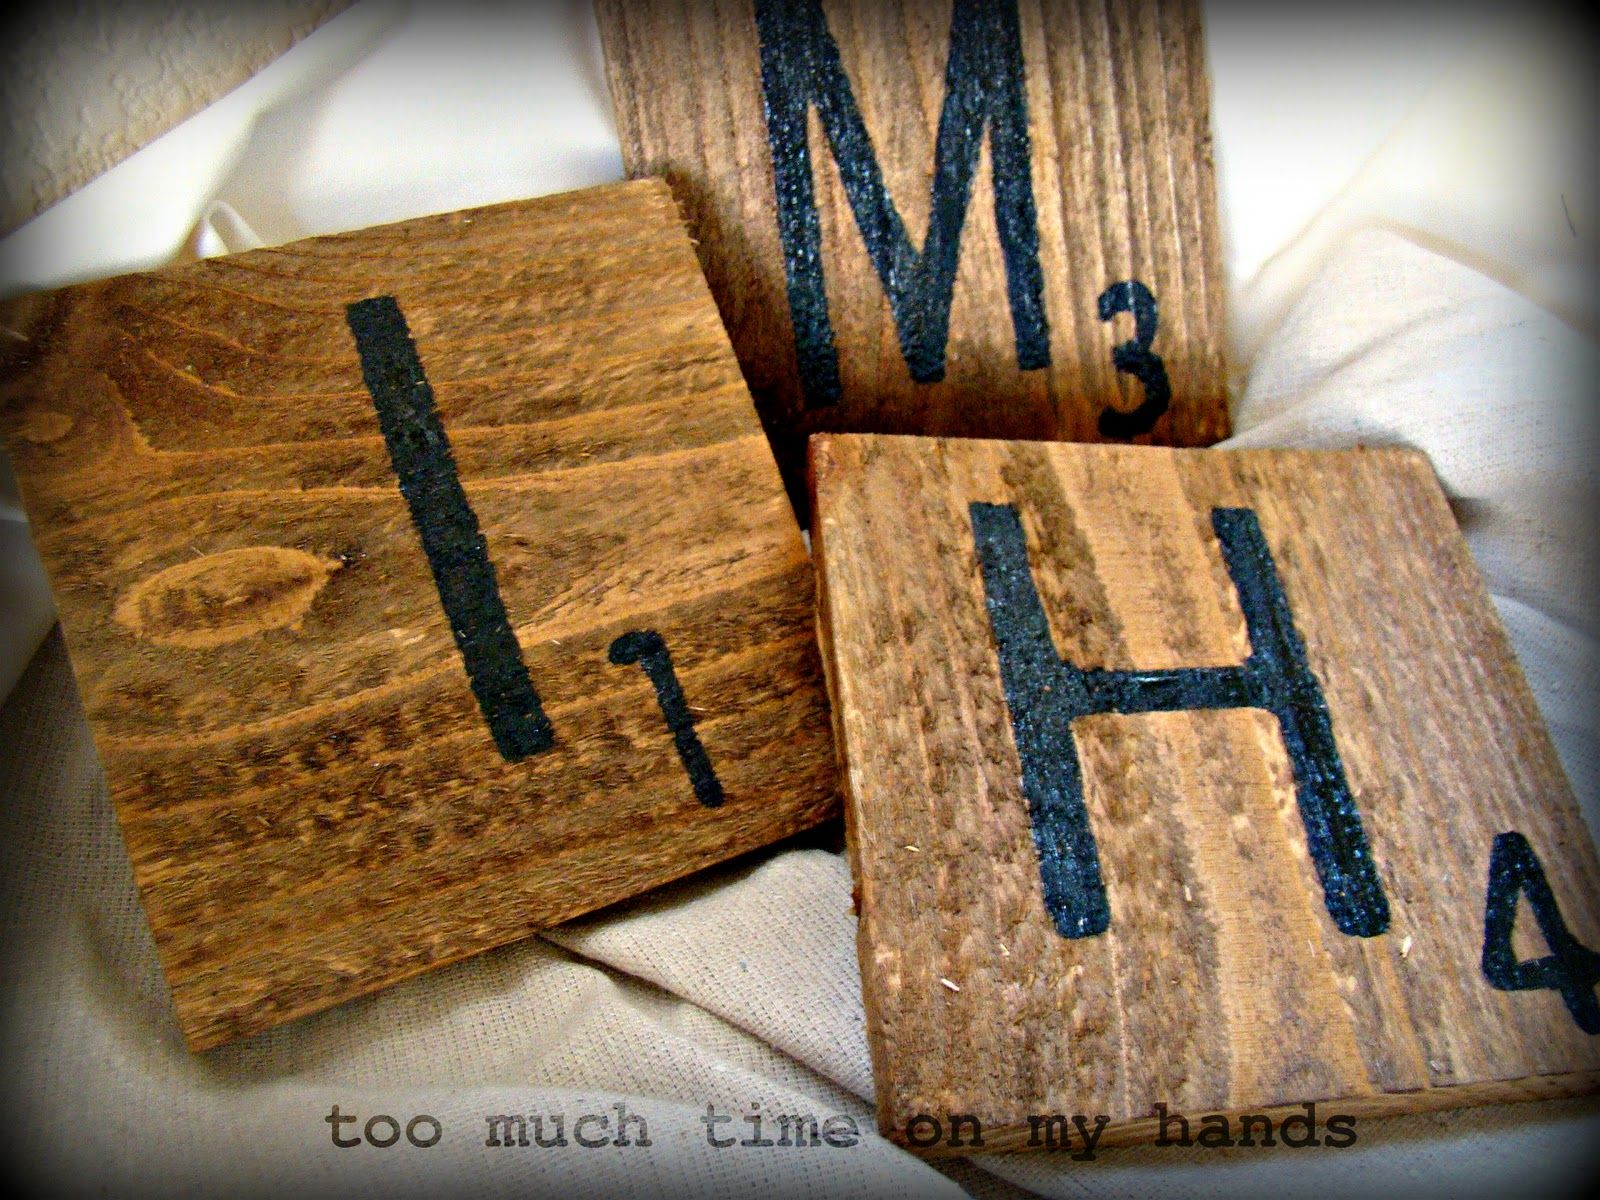 Scrabble Wall Tiles Scrabble Wood Tiles Uses Scrap Wood From The Scrap Wood Pile